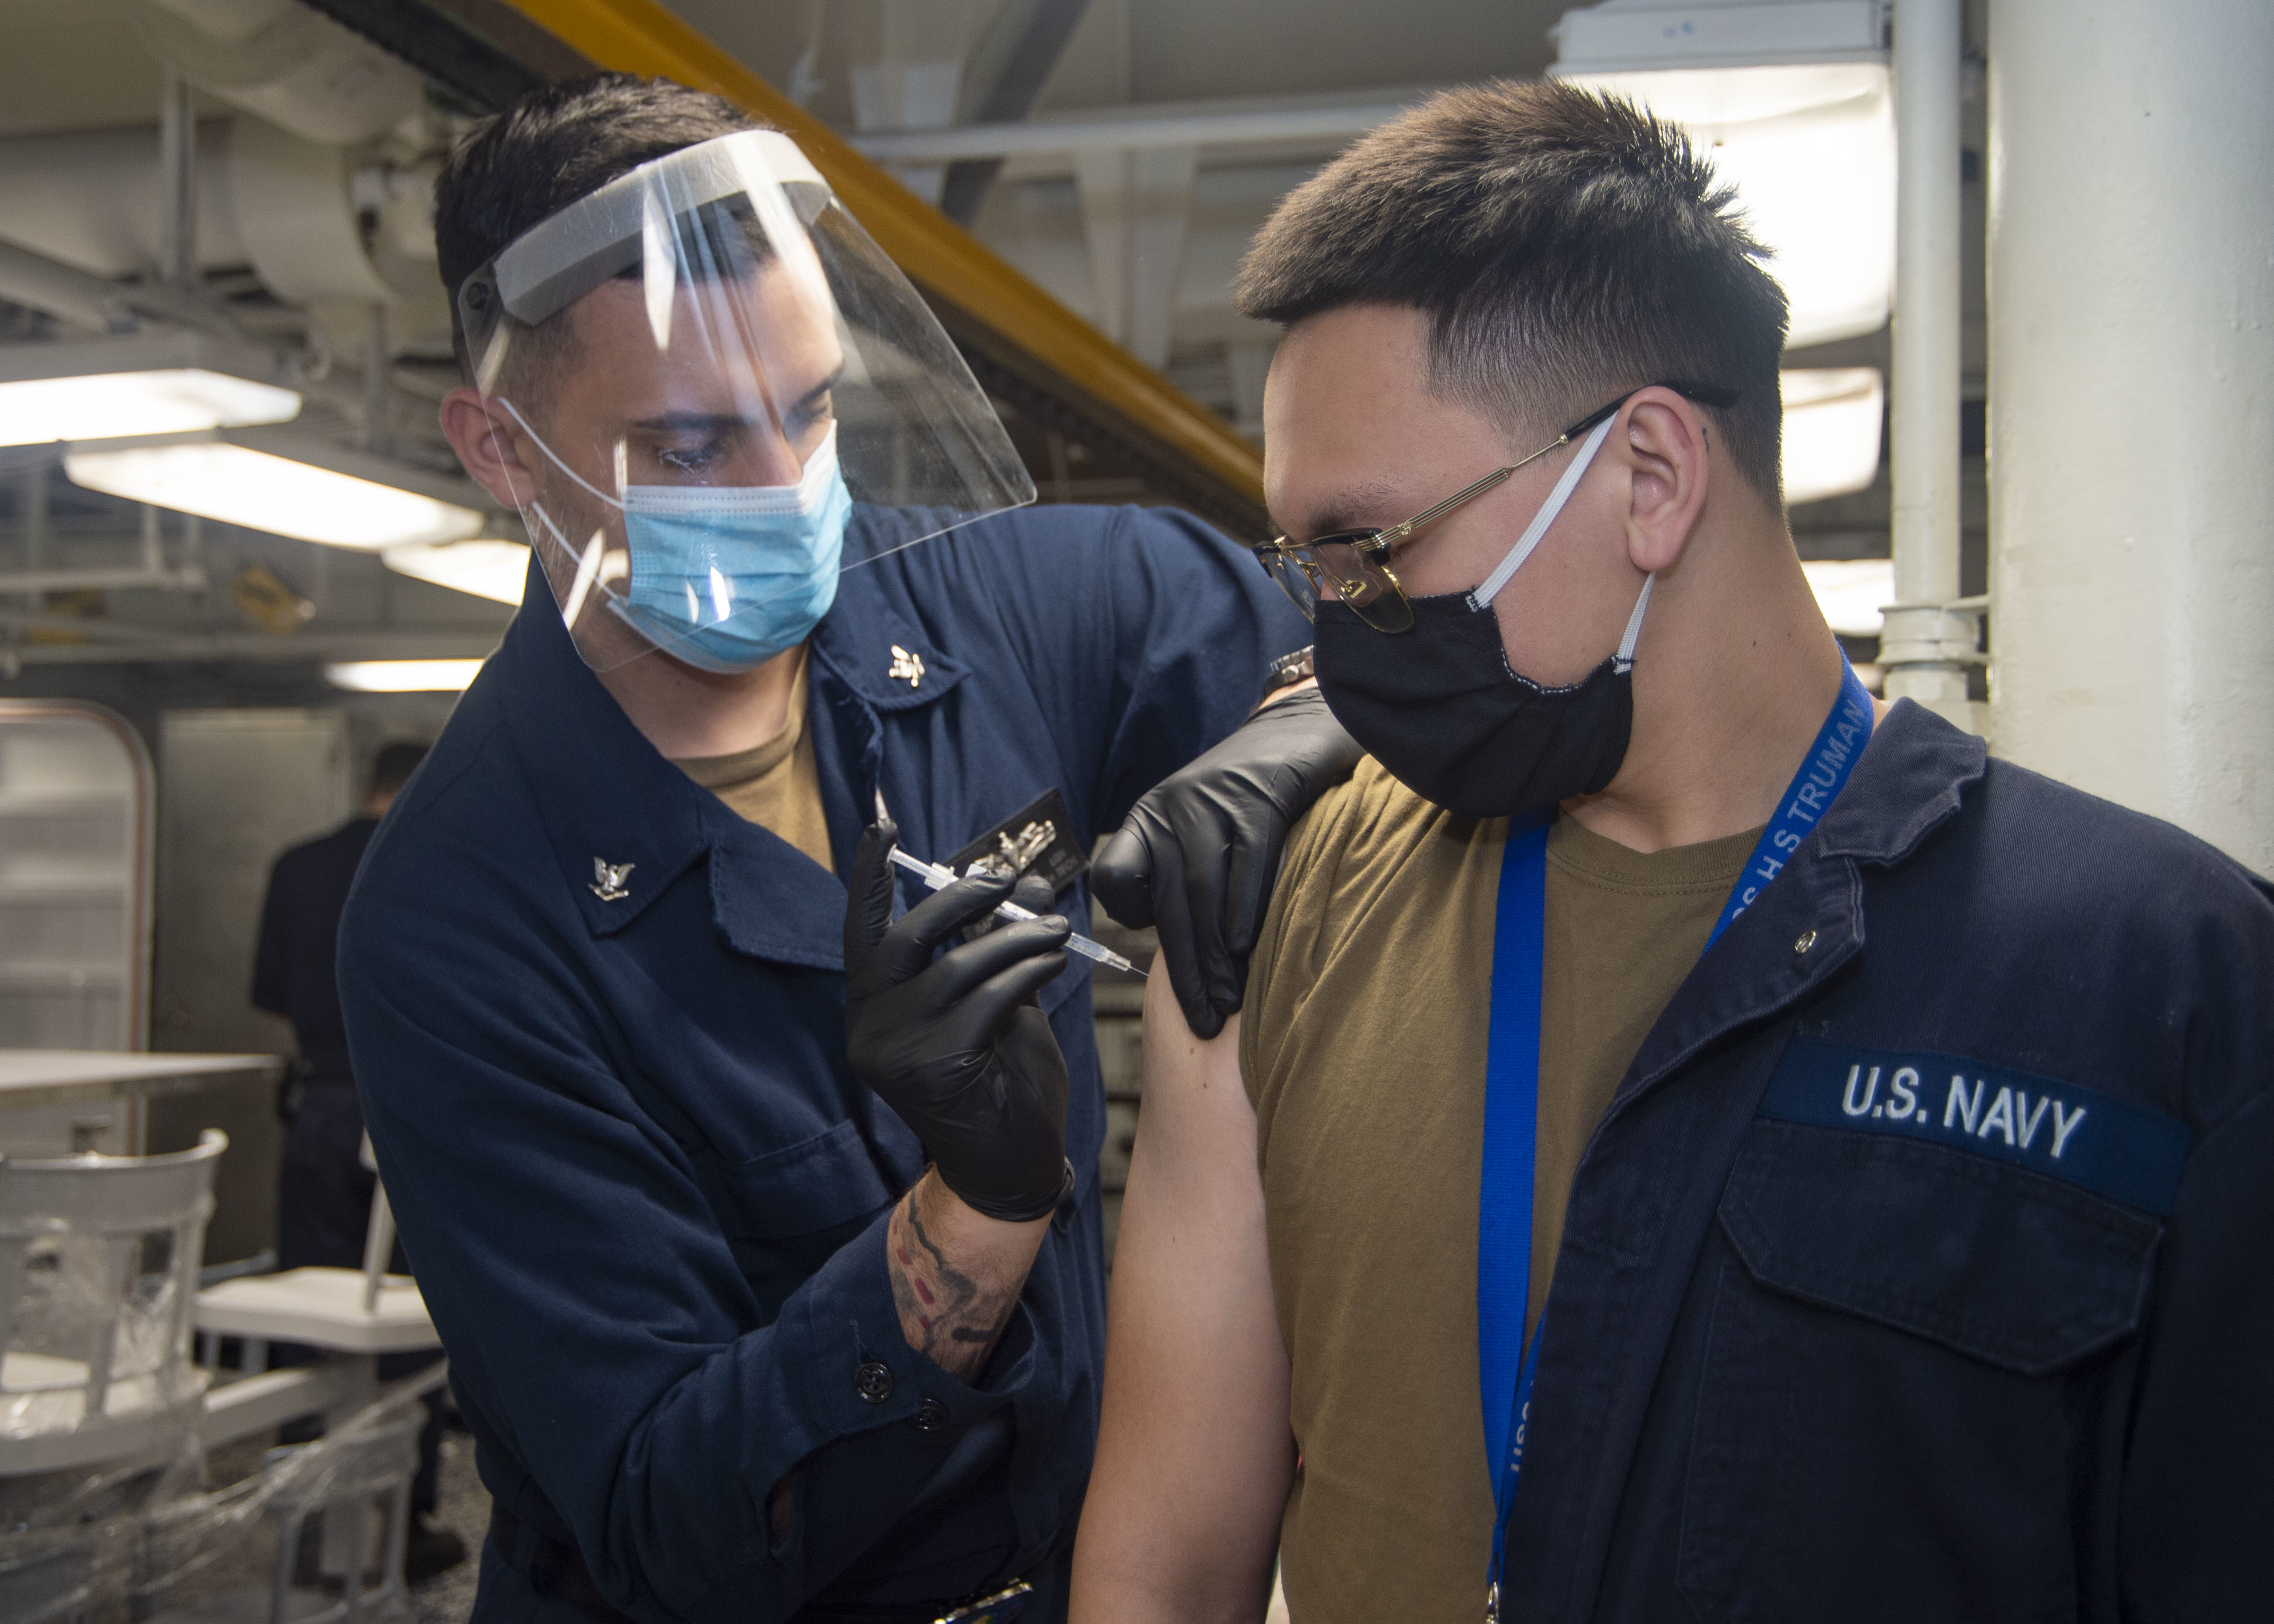 Hospital Corpsman 3rd Class Charles Connors, from Carmel, Indiana, left, administers a COVID-19 vaccine to Machinist's Mate Fireman Apprentice Christopher Musser, from Houston, on the forward mess decks aboard the Nimitz-class aircraft carrier USS Harry S. Truman (CVN 75).